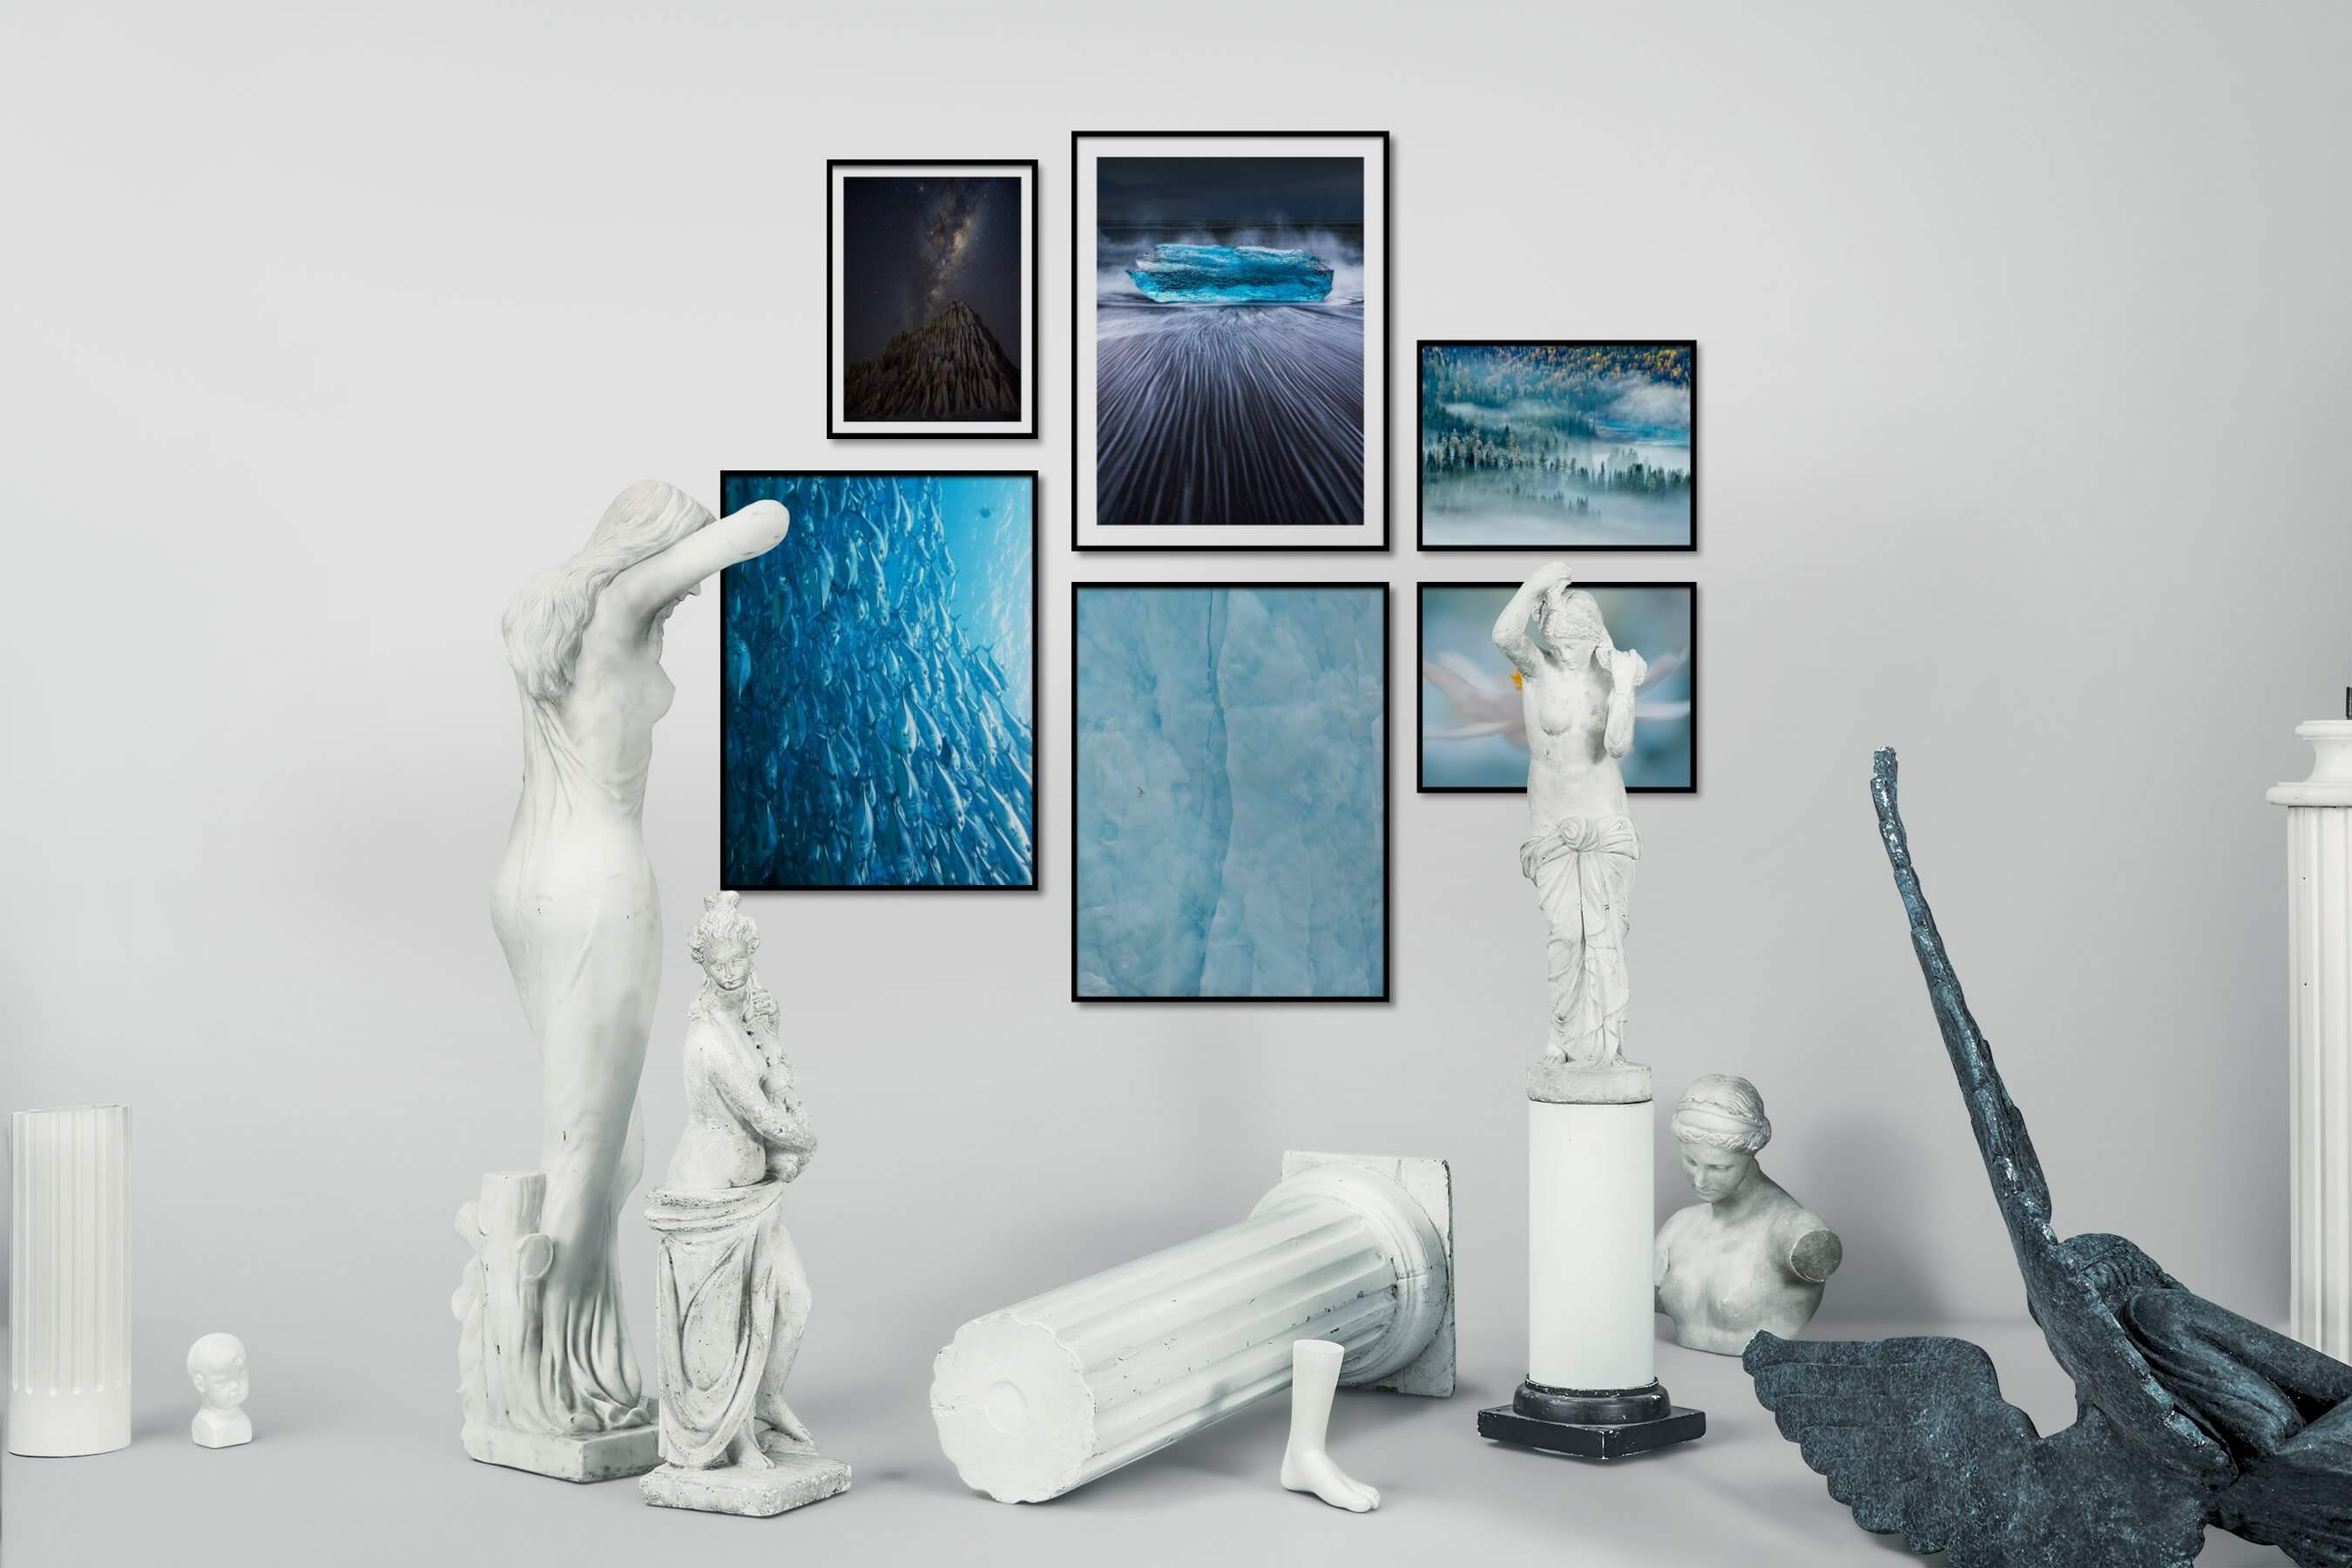 Gallery wall idea with six framed pictures arranged on a wall depicting Nature, Beach & Water, For the Moderate, Animals, For the Minimalist, and Flowers & Plants